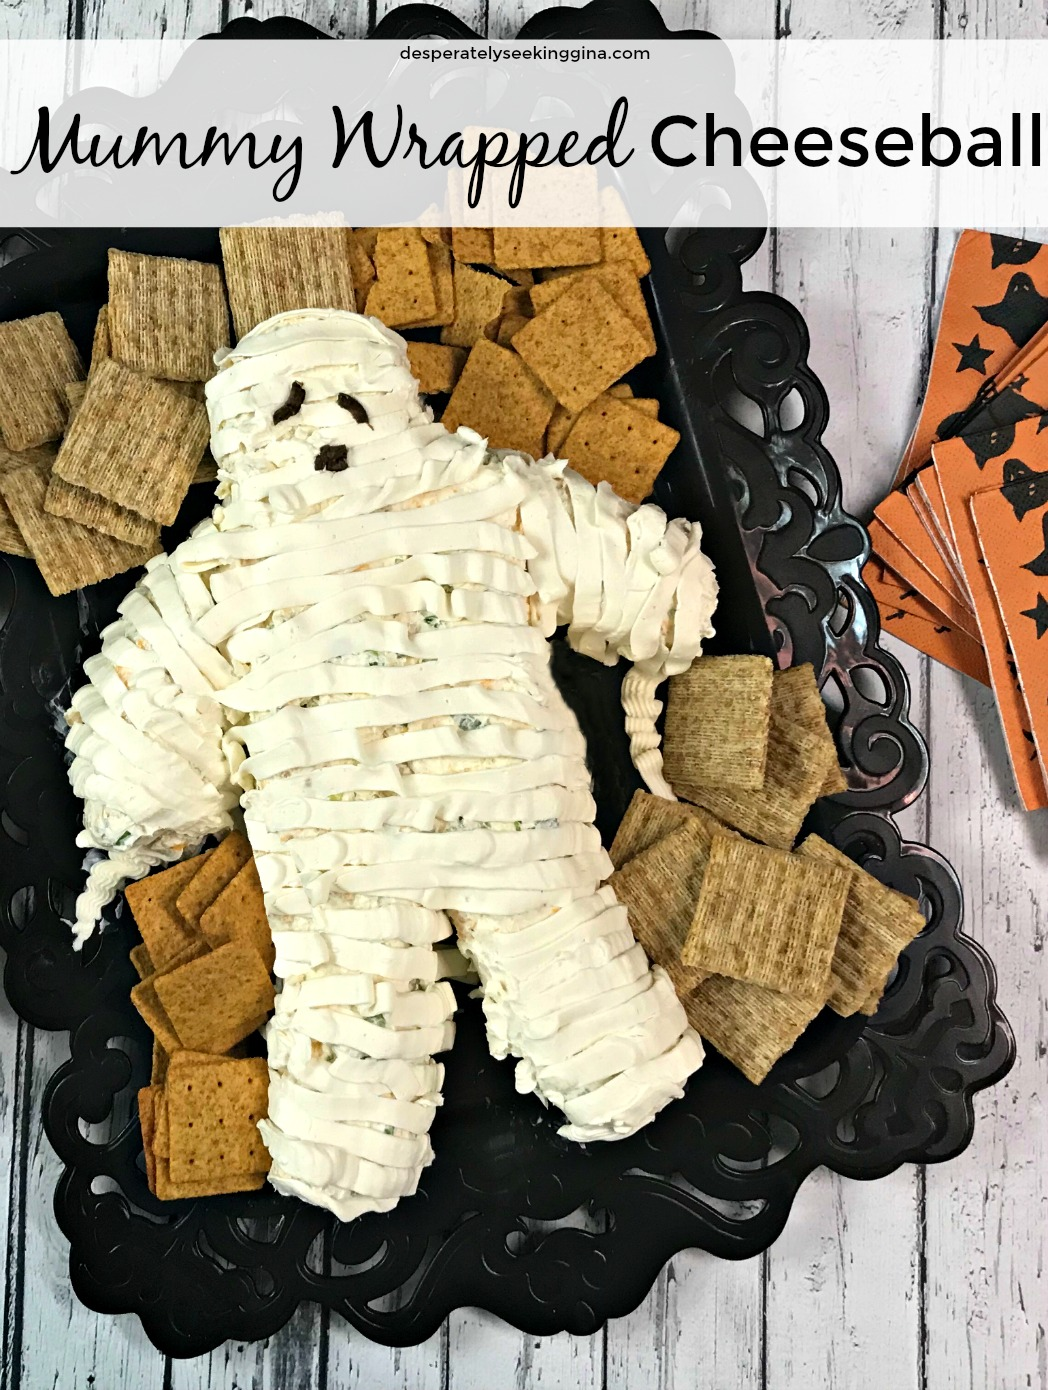 Delight your Halloween party guests with a delicious mummy wrapped cheeseball.